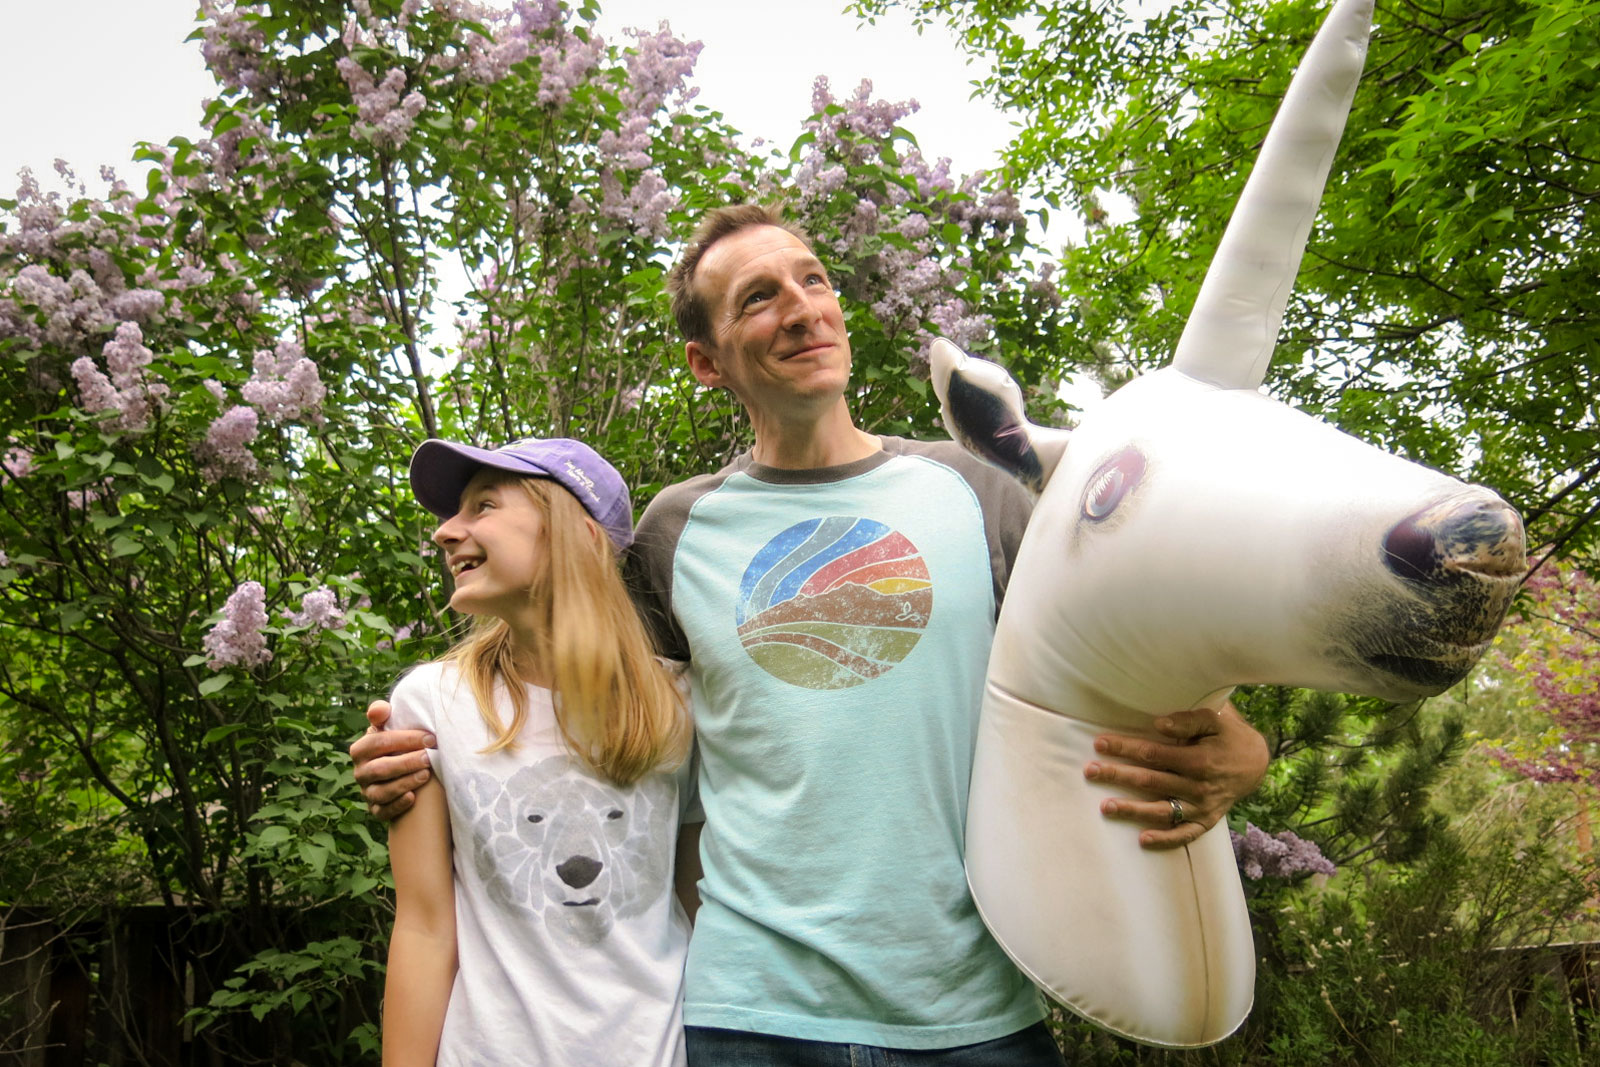 <p>Juvenilefiction author Todd Mitchell wrote his most recent book with help from his 13-year-old daughter Addison.</p>